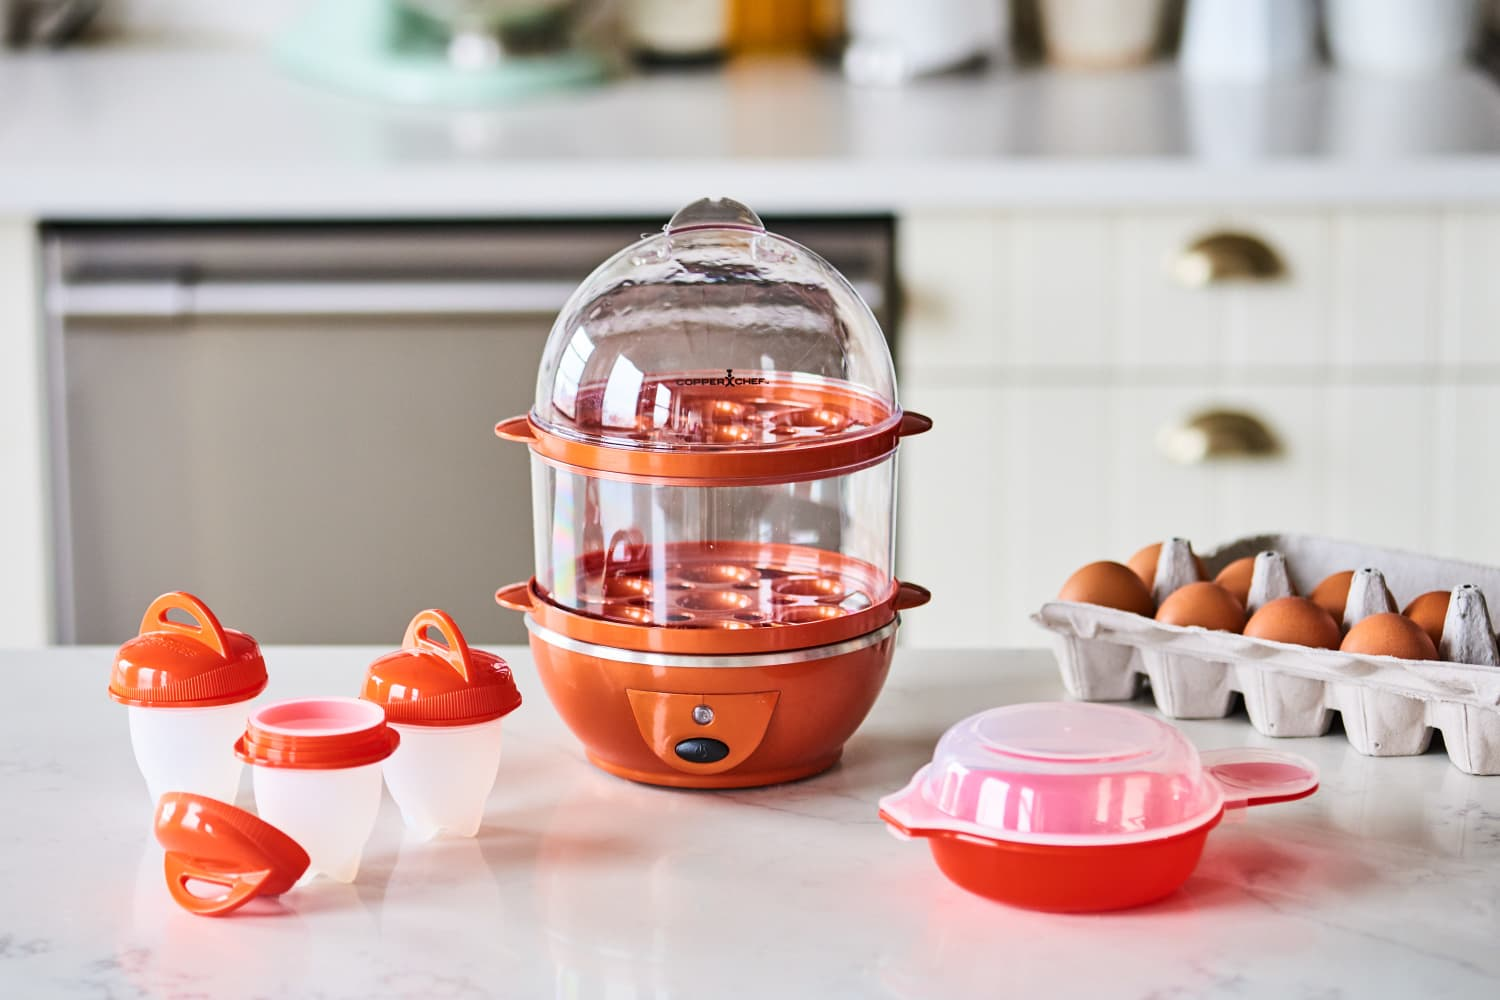 I Tried Every As-Seen-on-TV Egg Gadget — And Actually Really Liked 3 of Them